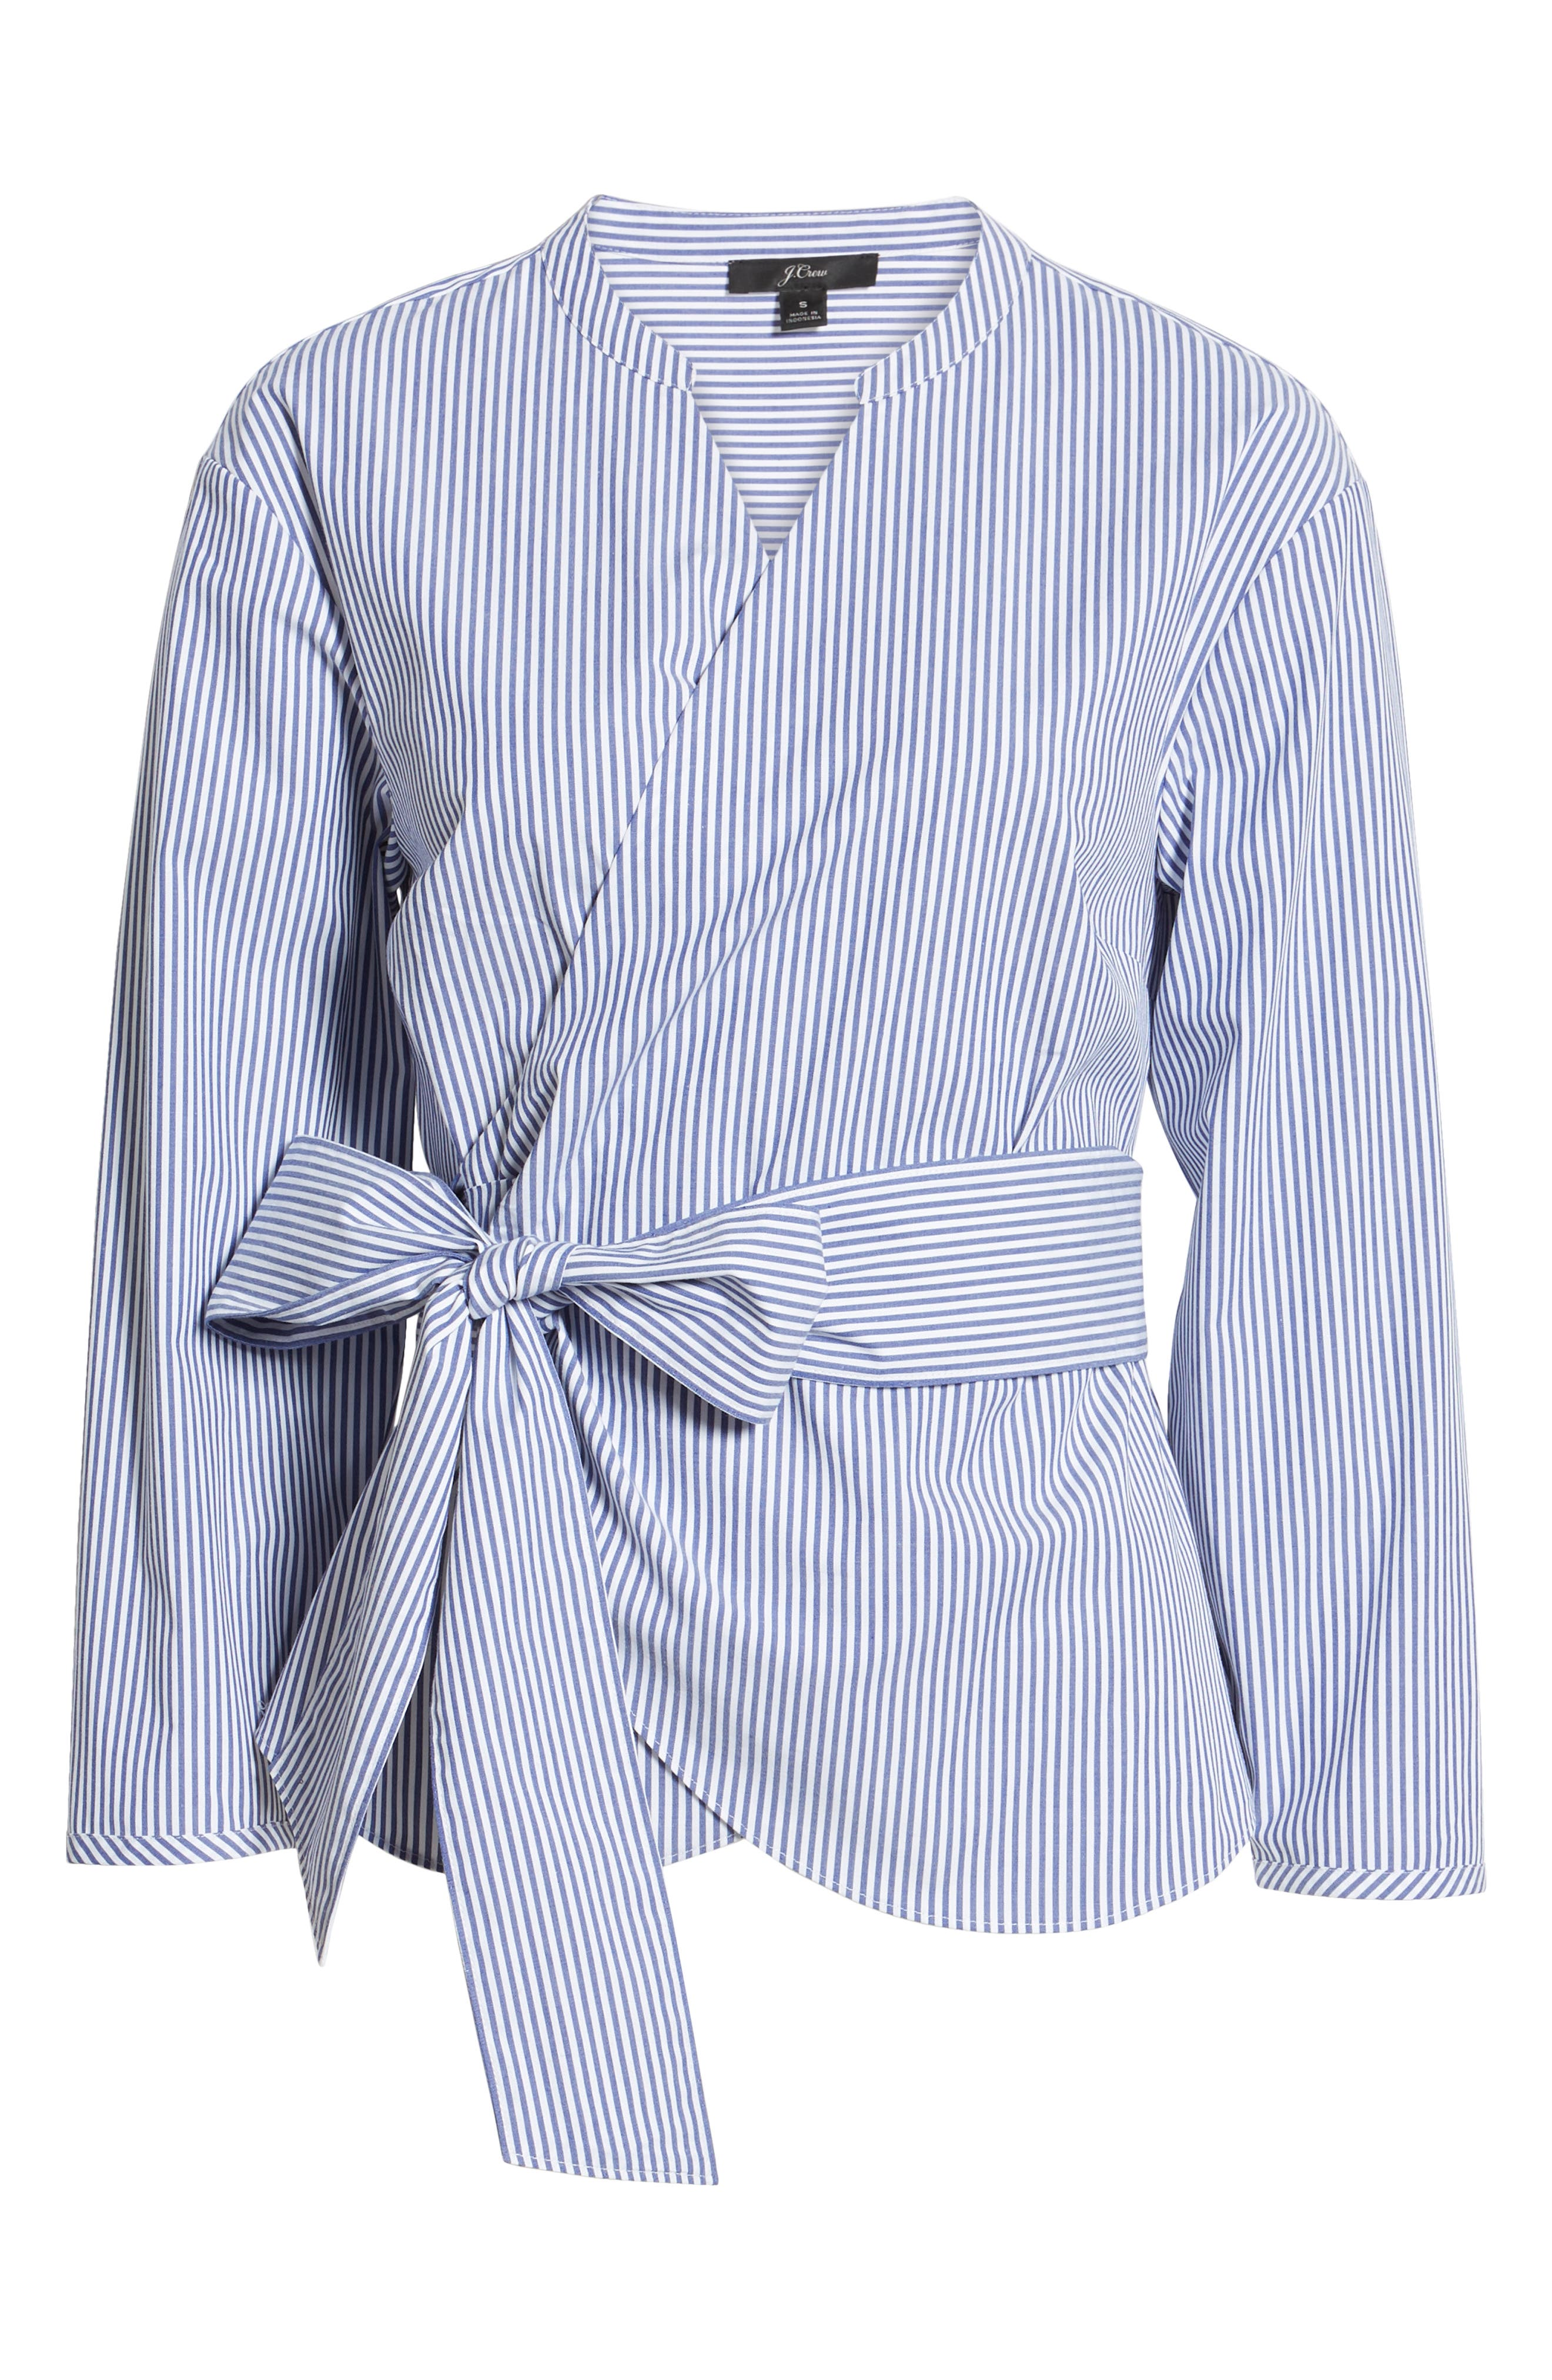 J.CREW, Stretch Cotton Stripe Wrap Top, Alternate thumbnail 6, color, BLUE